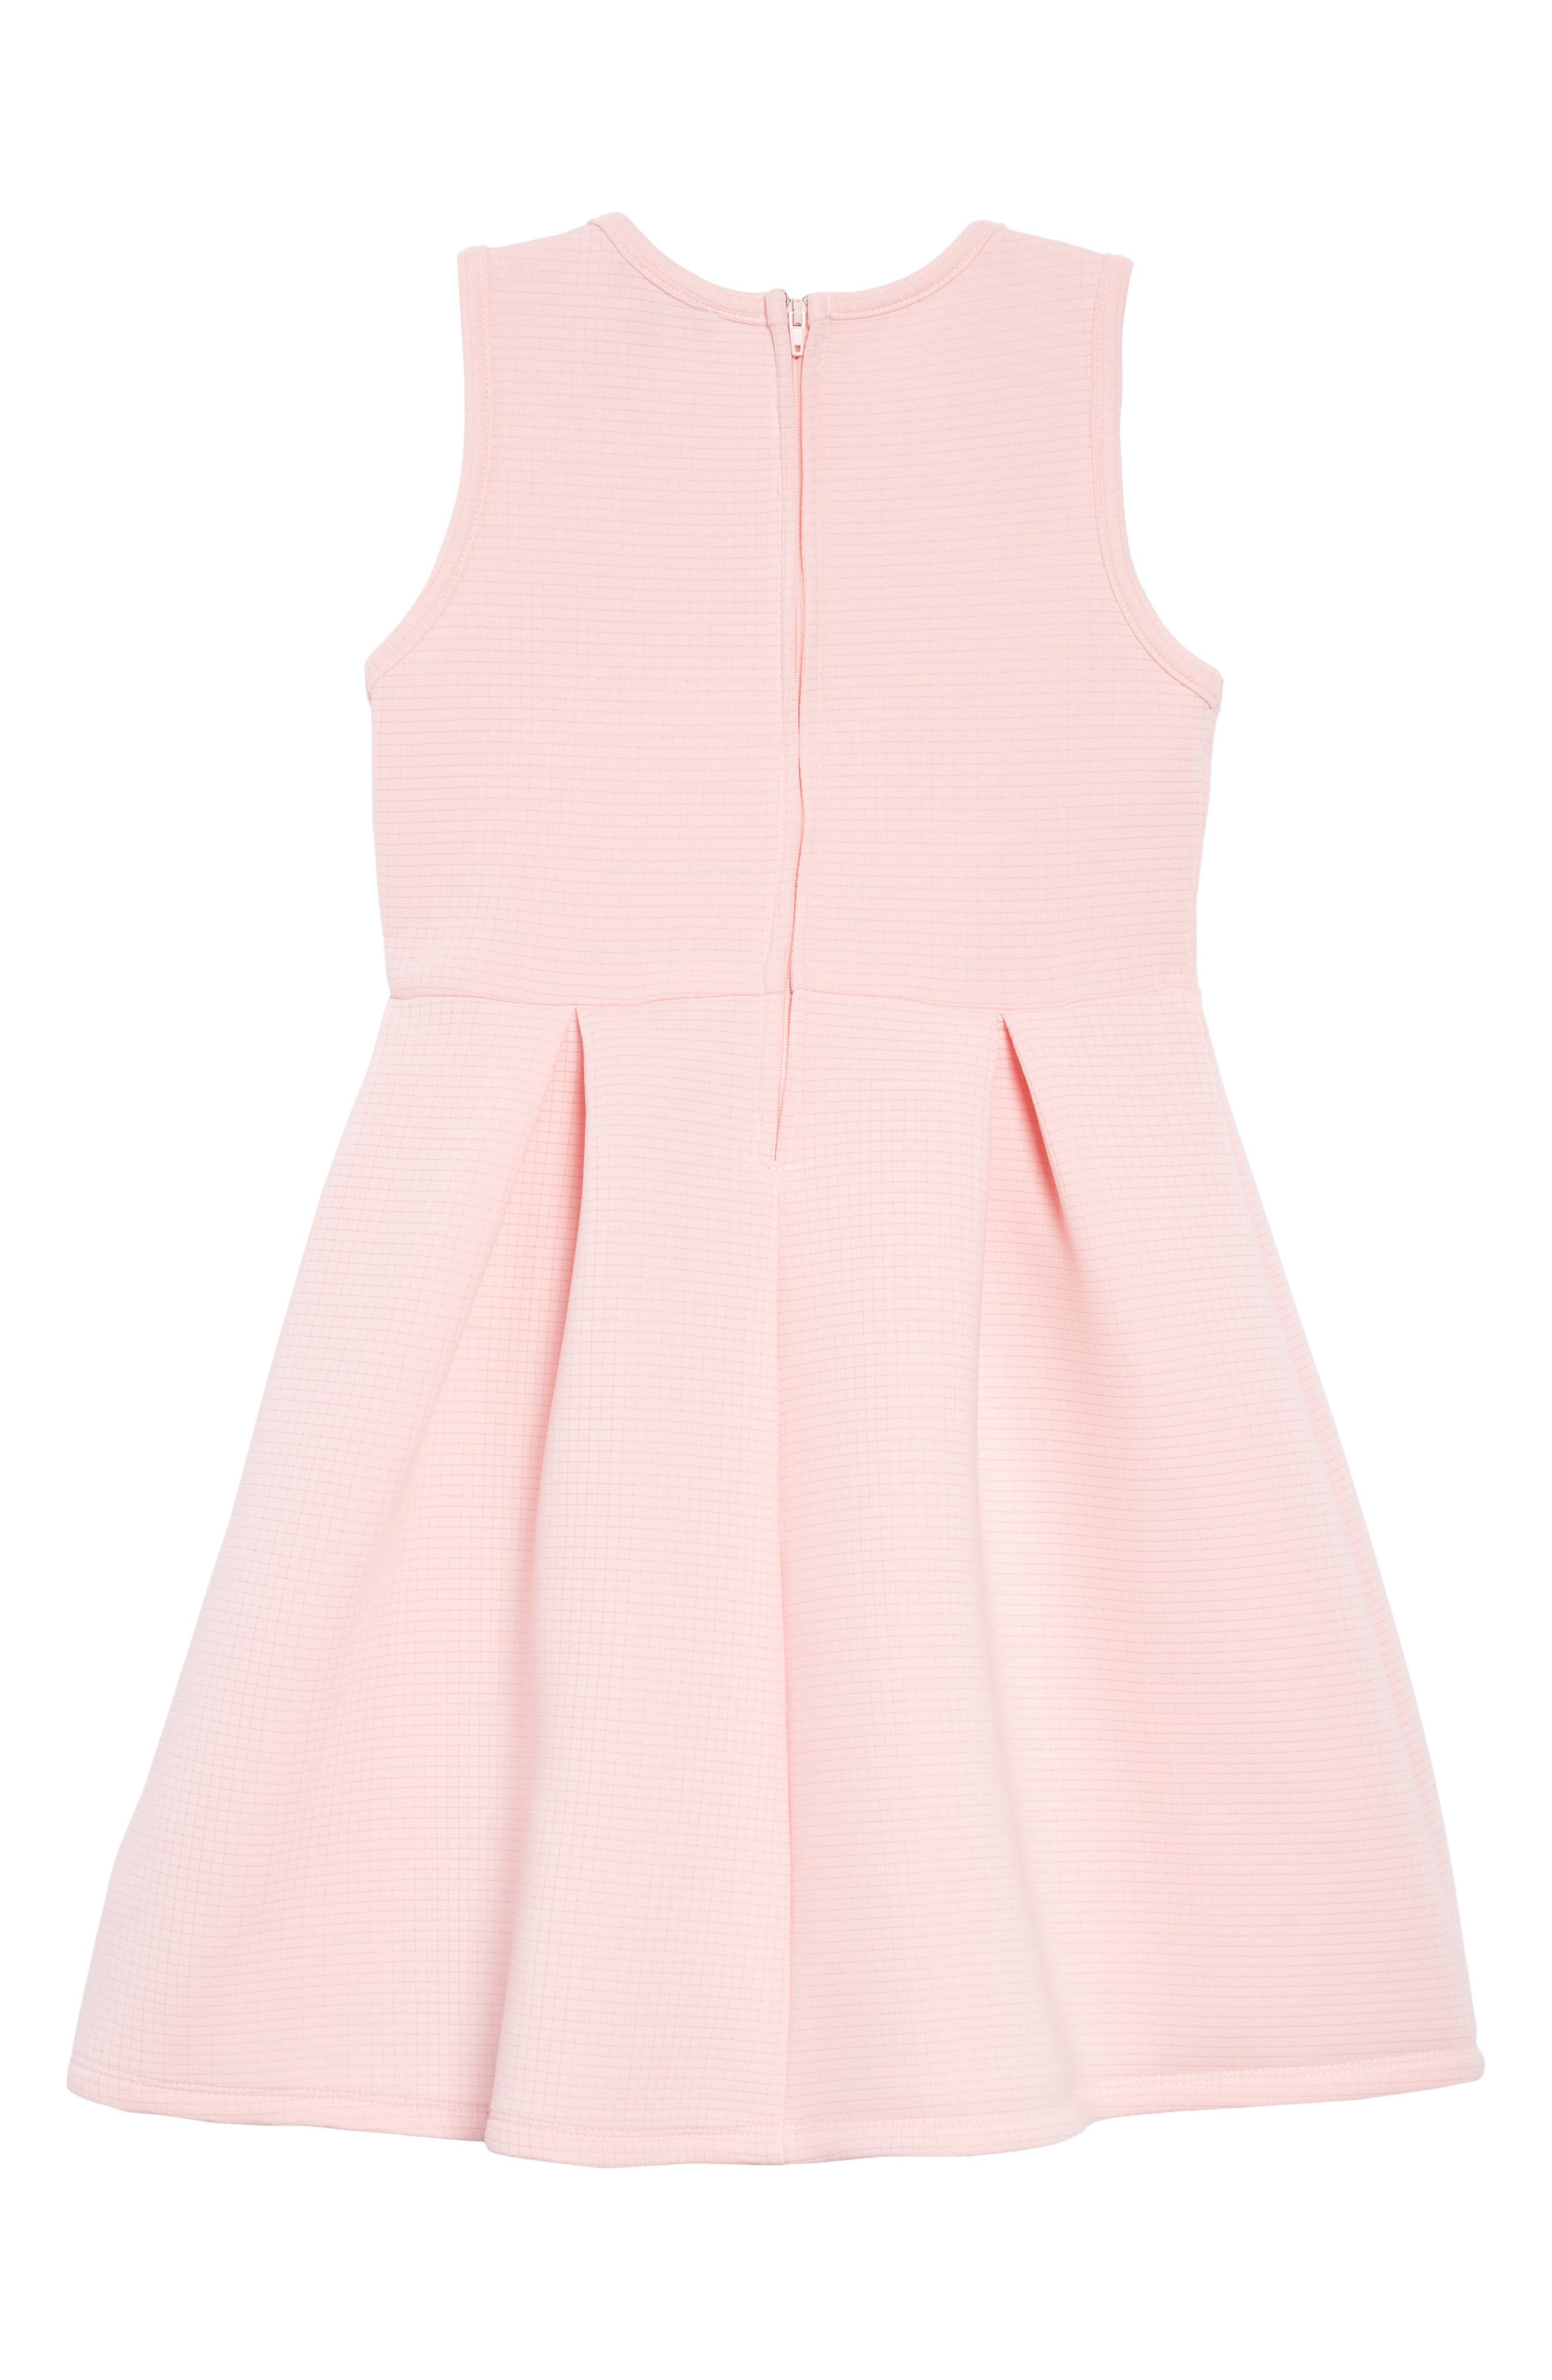 Pleated Fit & Flare Tank Dress,                             Alternate thumbnail 2, color,                             680